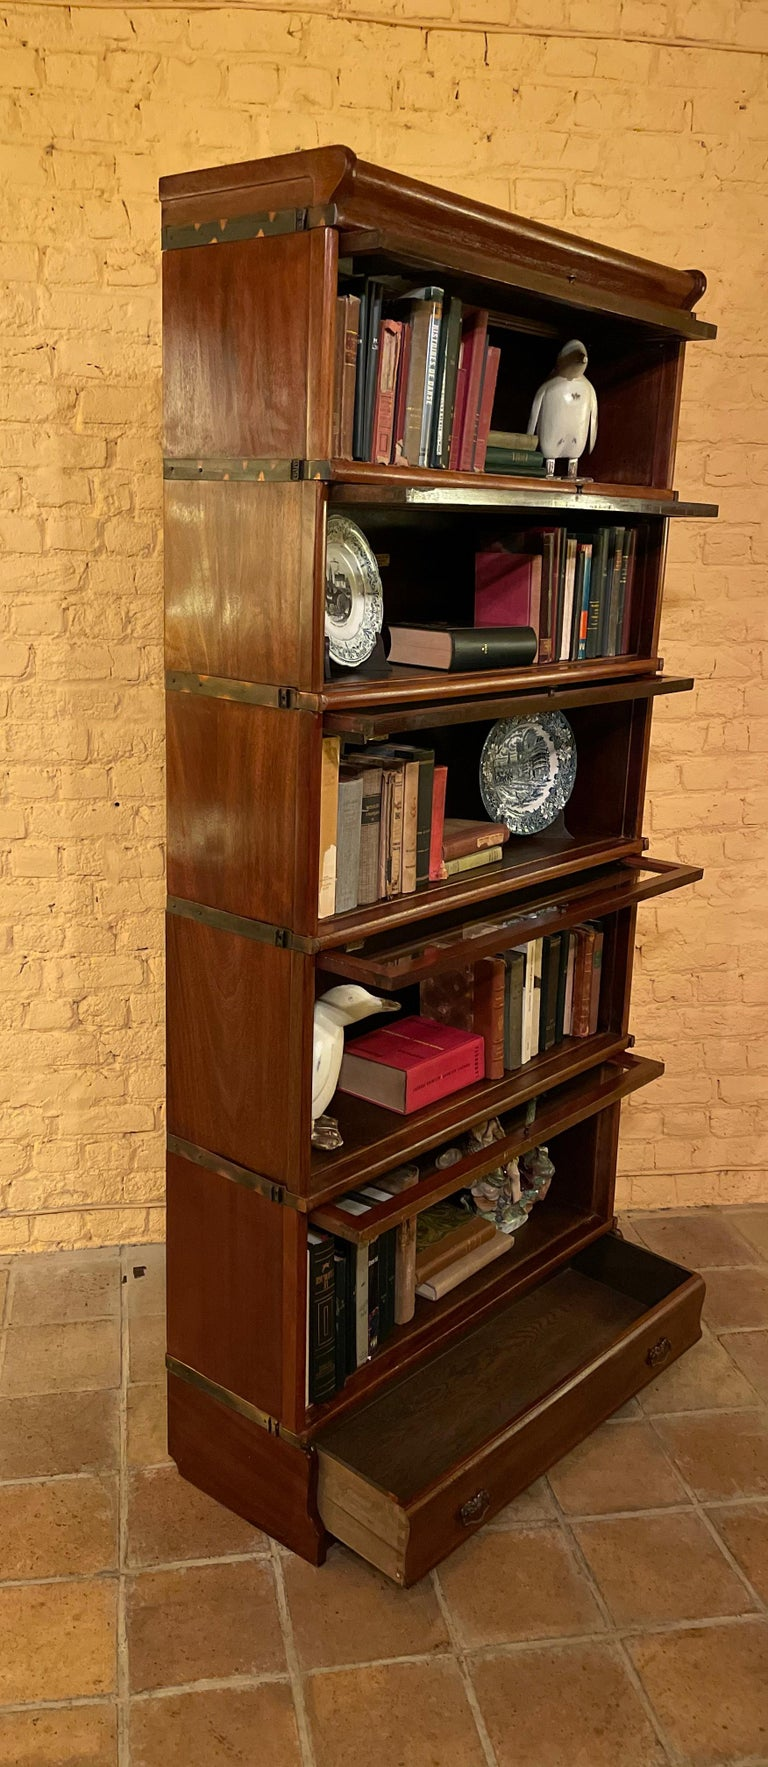 Bookcase from Globe Wernicke Called Stacking Bookcase in Mahogany-5 Elements For Sale 1